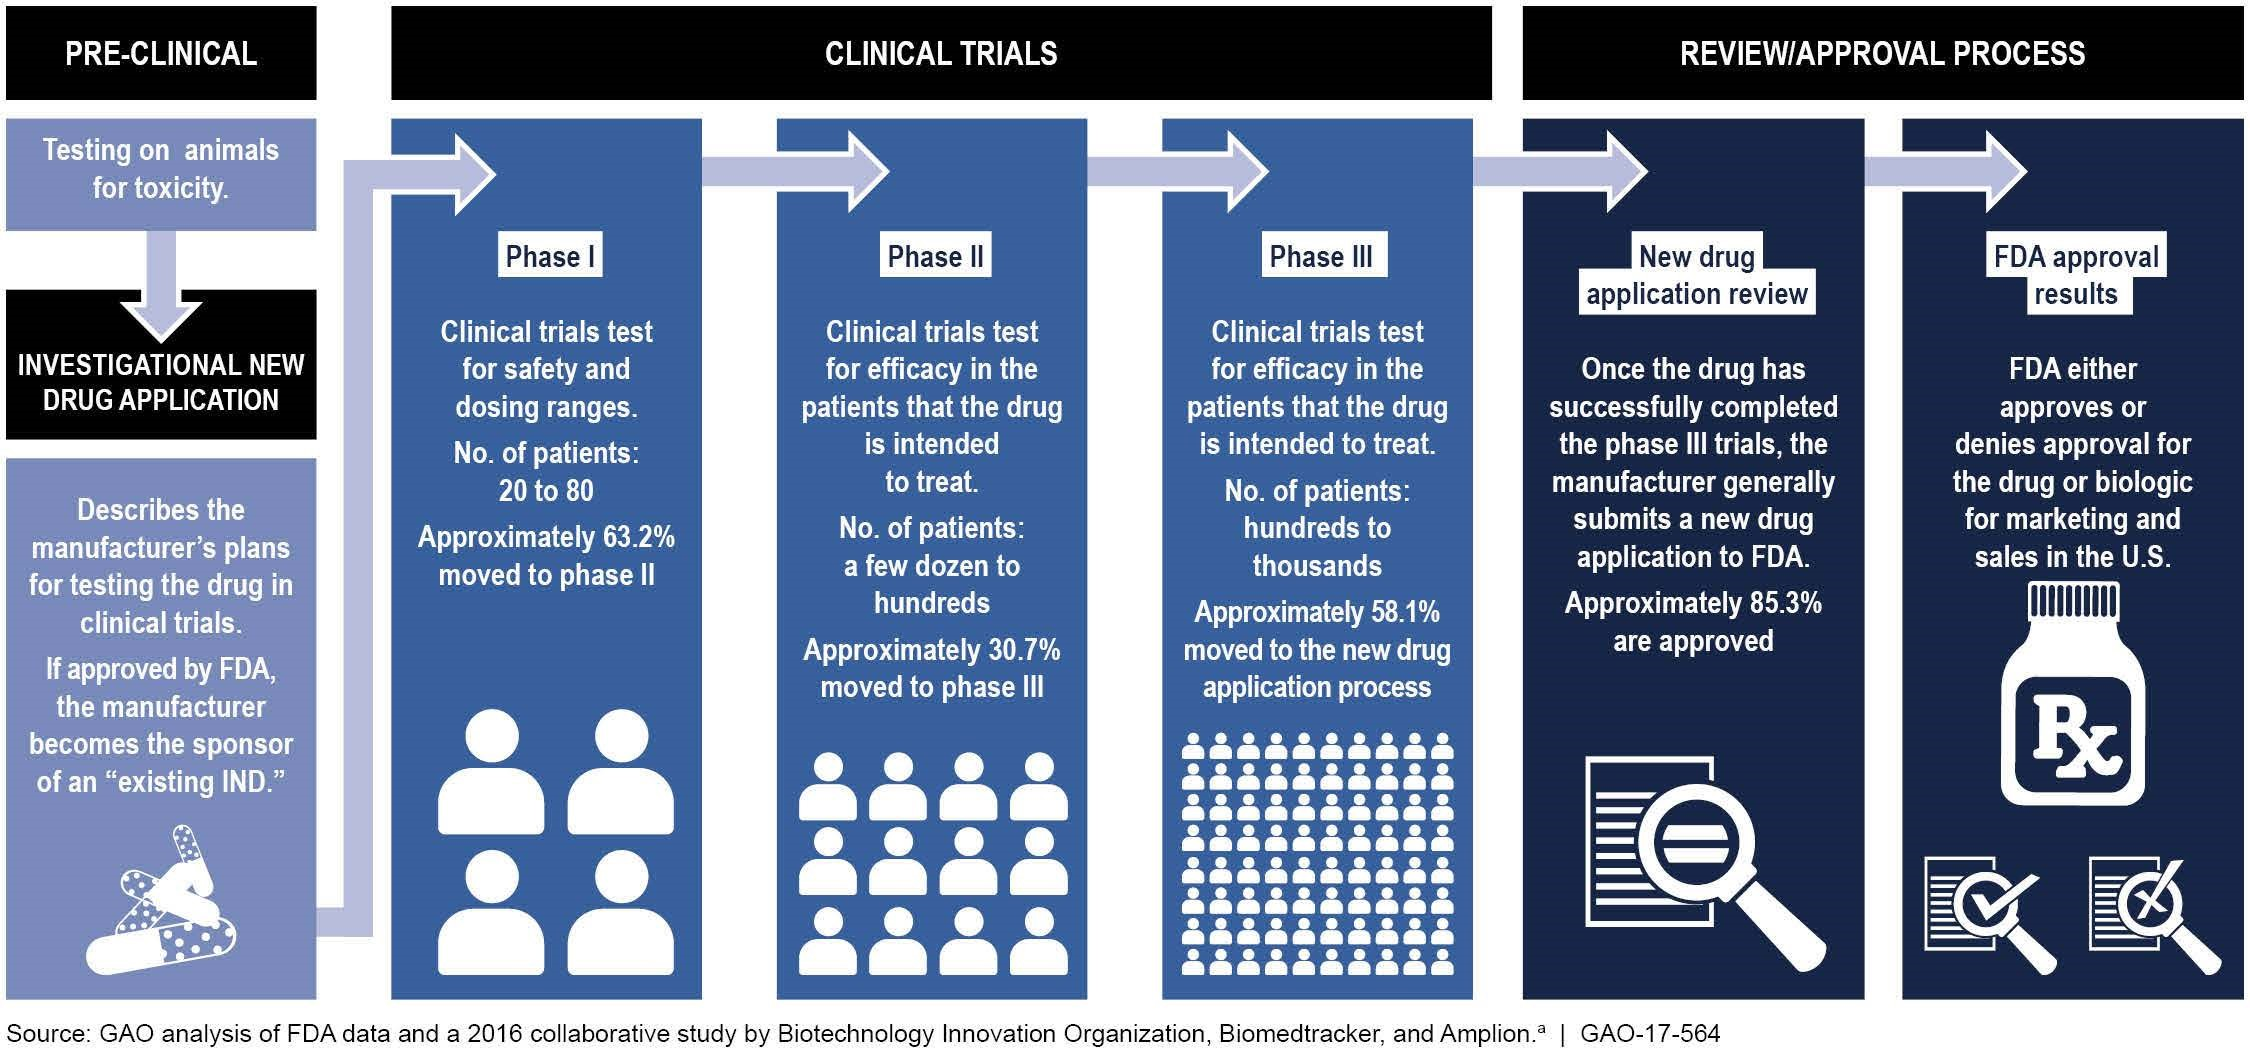 Steps involved in drug development and approval process